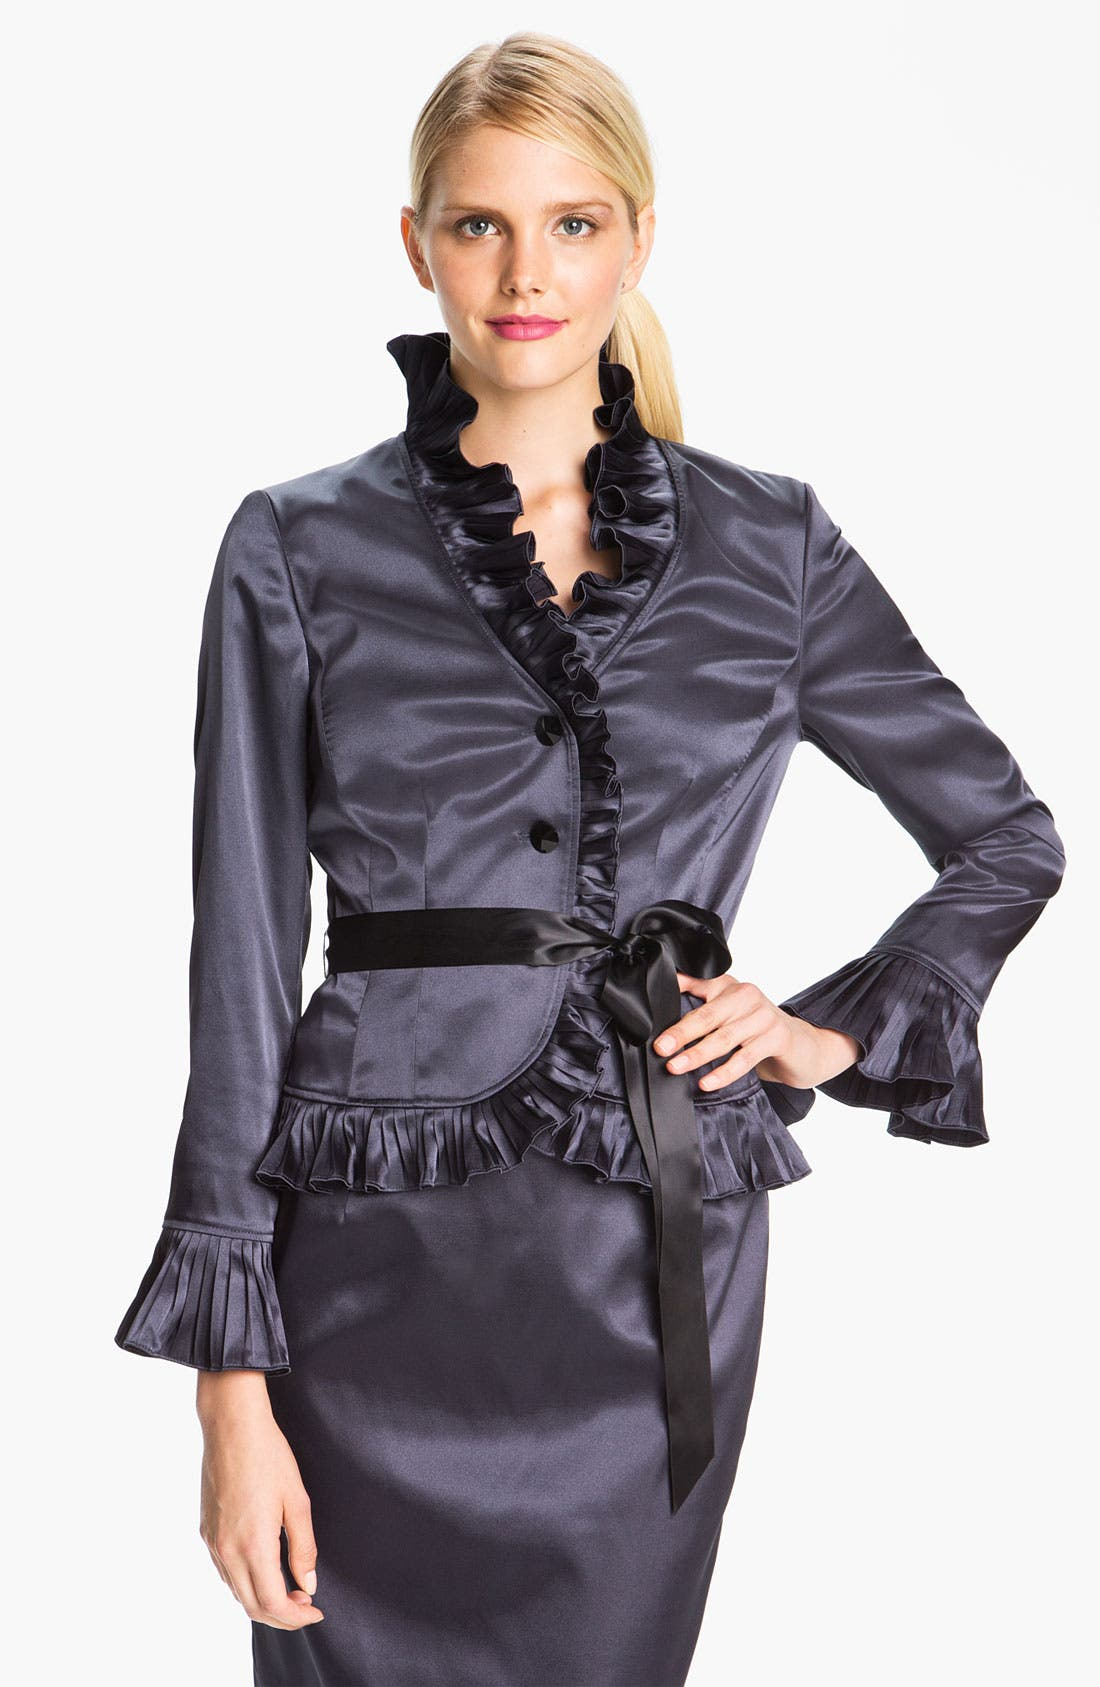 Alternate Image 1 Selected - Adrianna Papell Ruffle Trim Satin Jacket